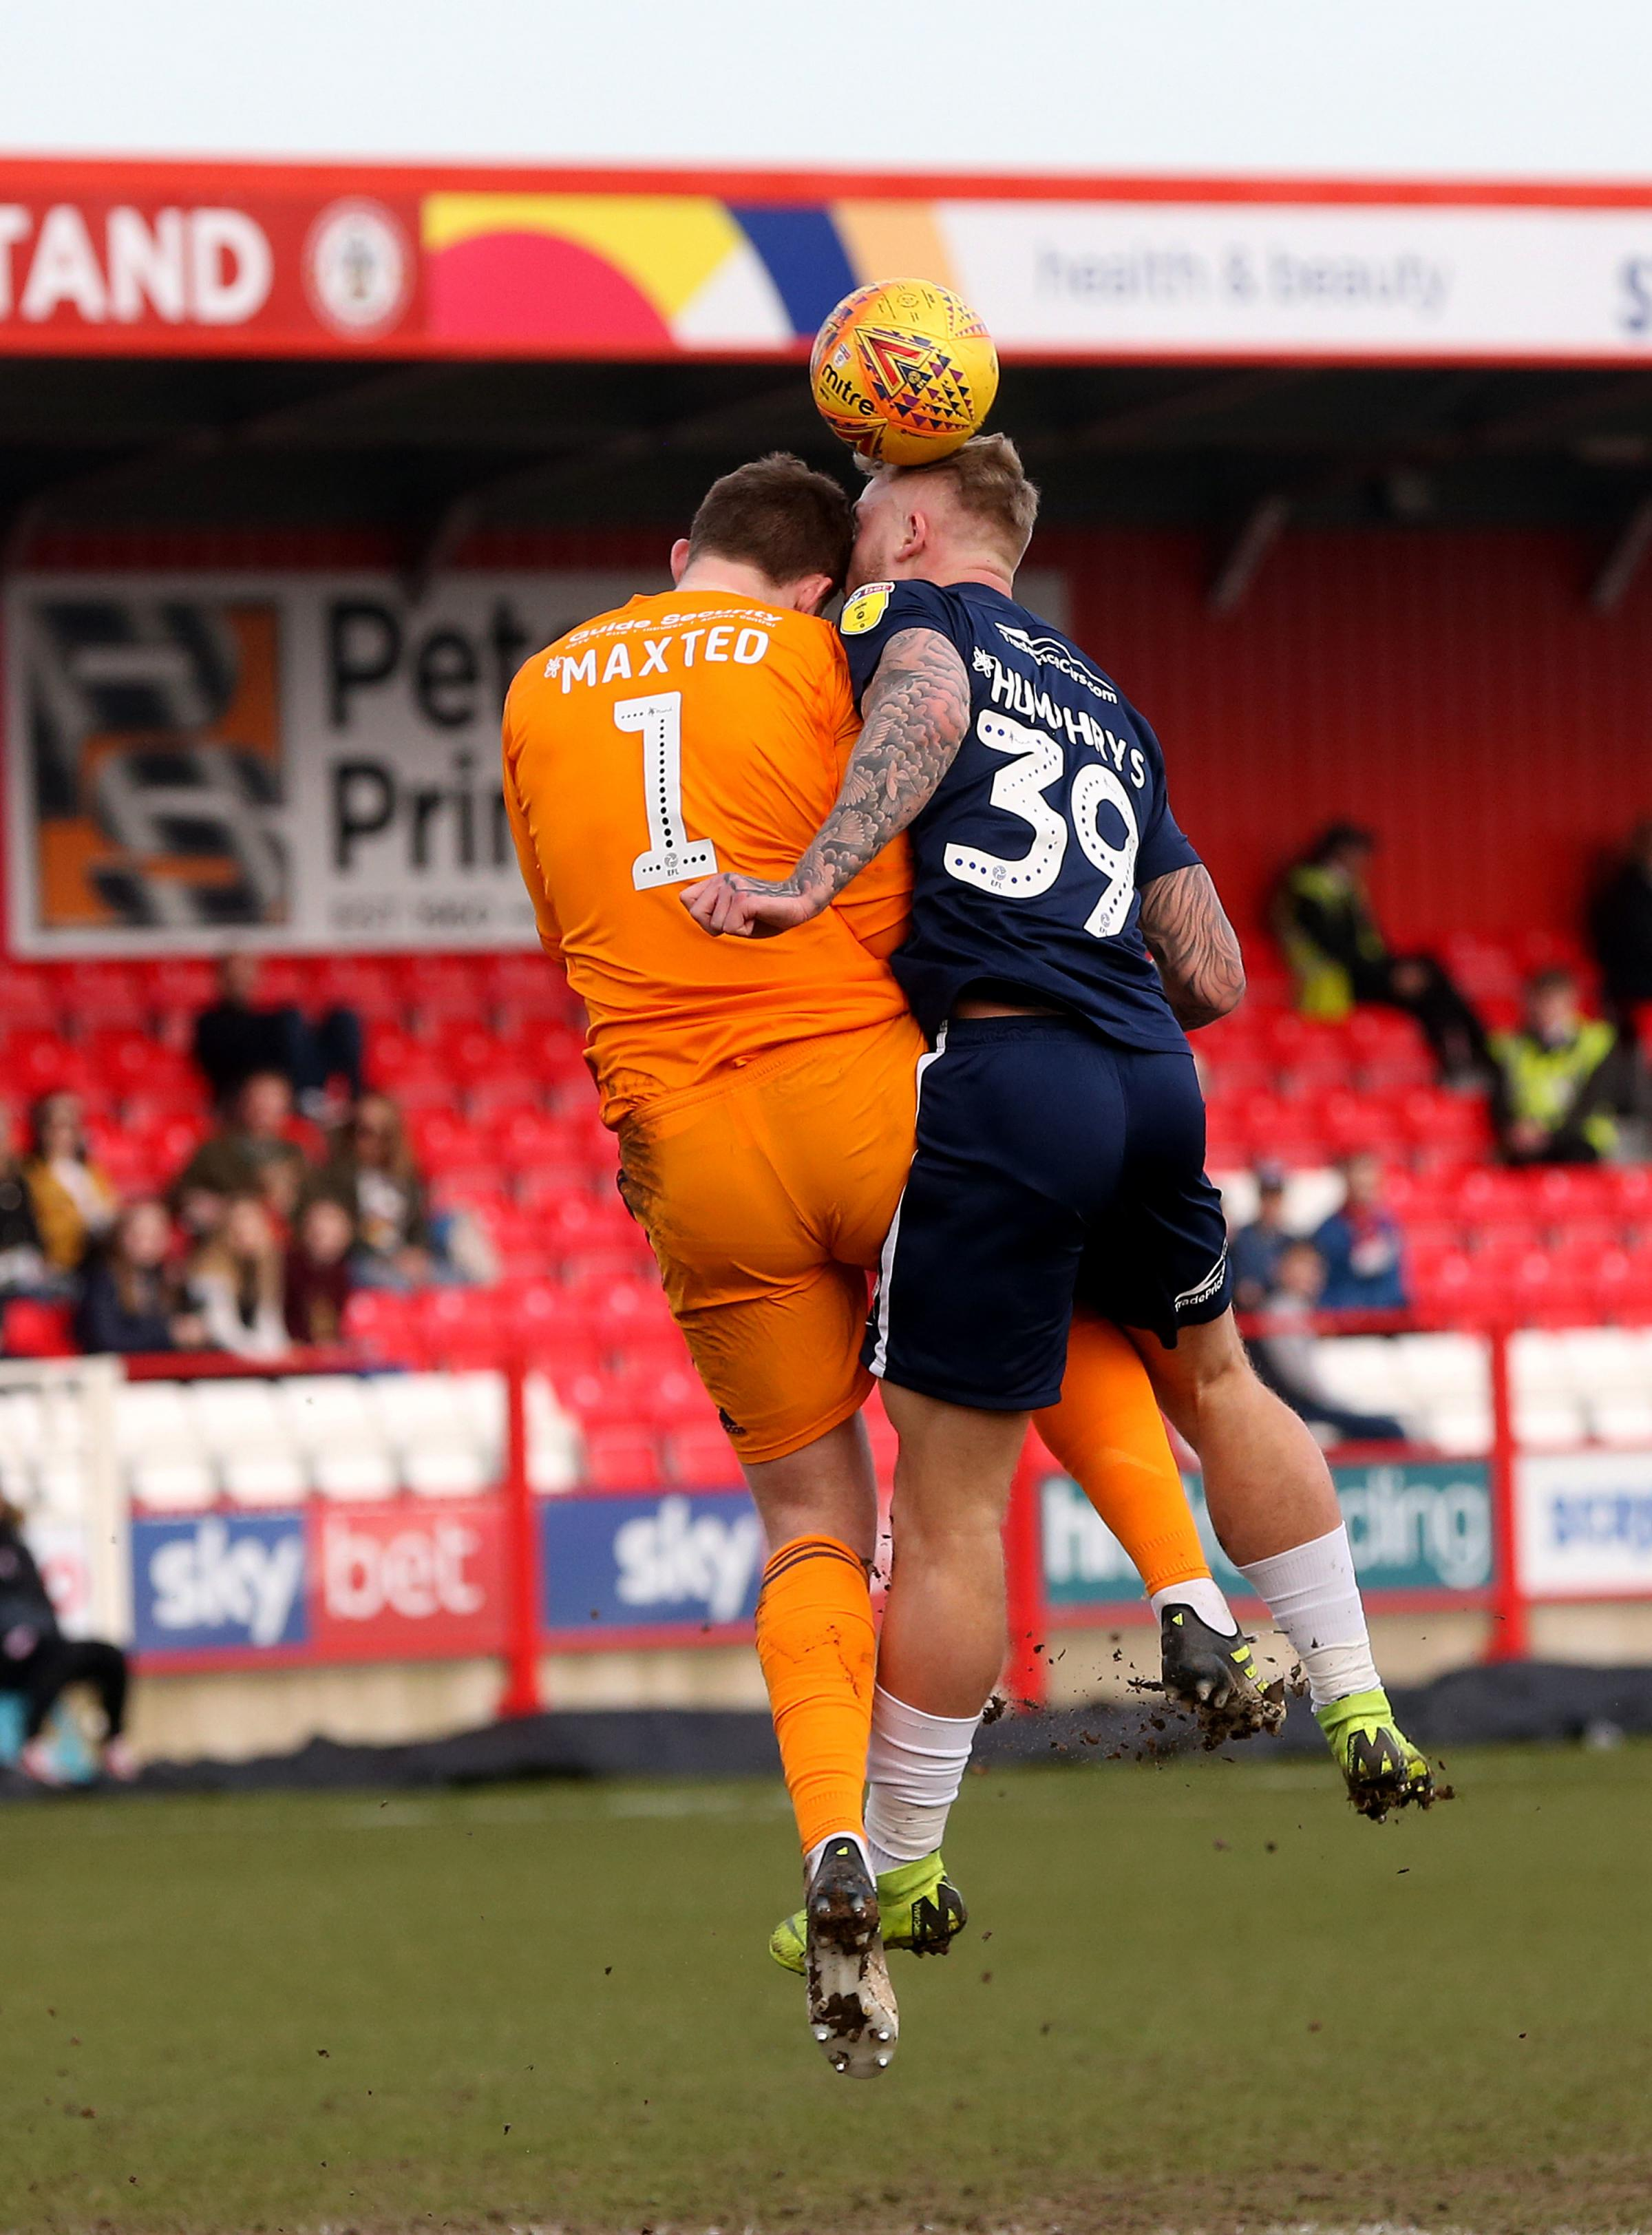 Out injured - Southend United striker Stephen Humphrys